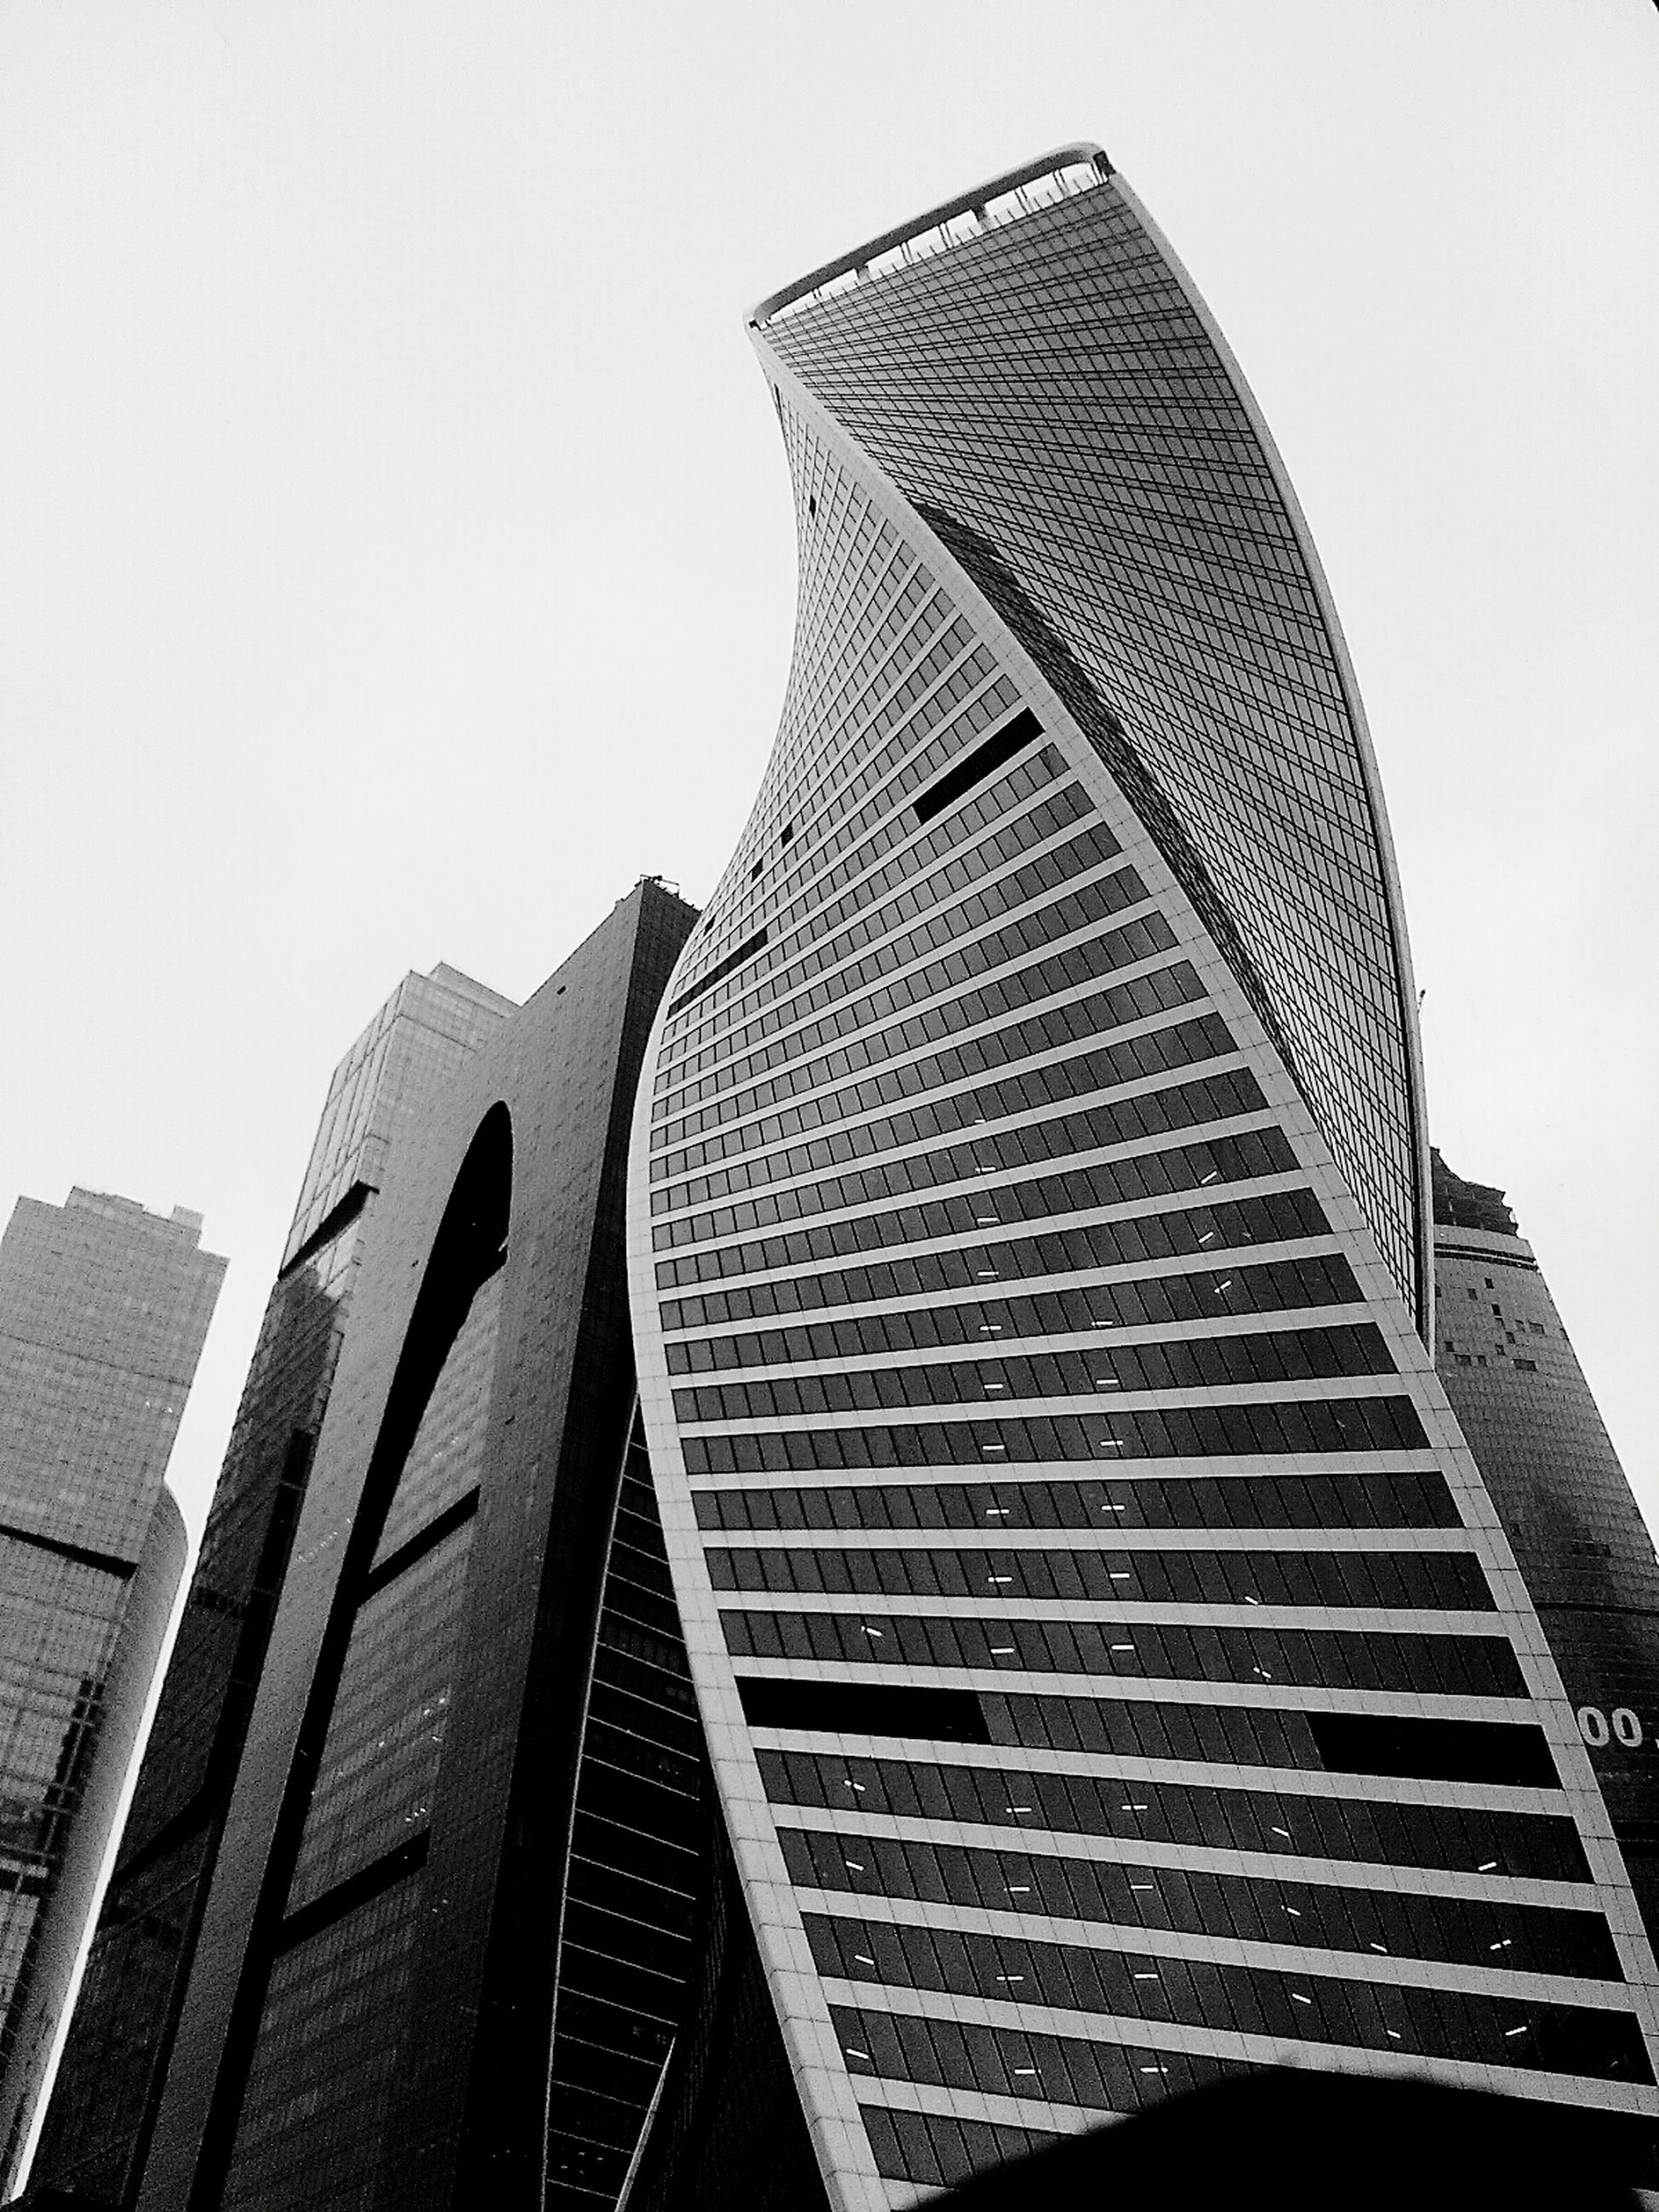 low angle view, building exterior, architecture, built structure, skyscraper, tall - high, modern, clear sky, tower, office building, city, tall, building, day, sky, outdoors, glass - material, development, no people, architectural feature